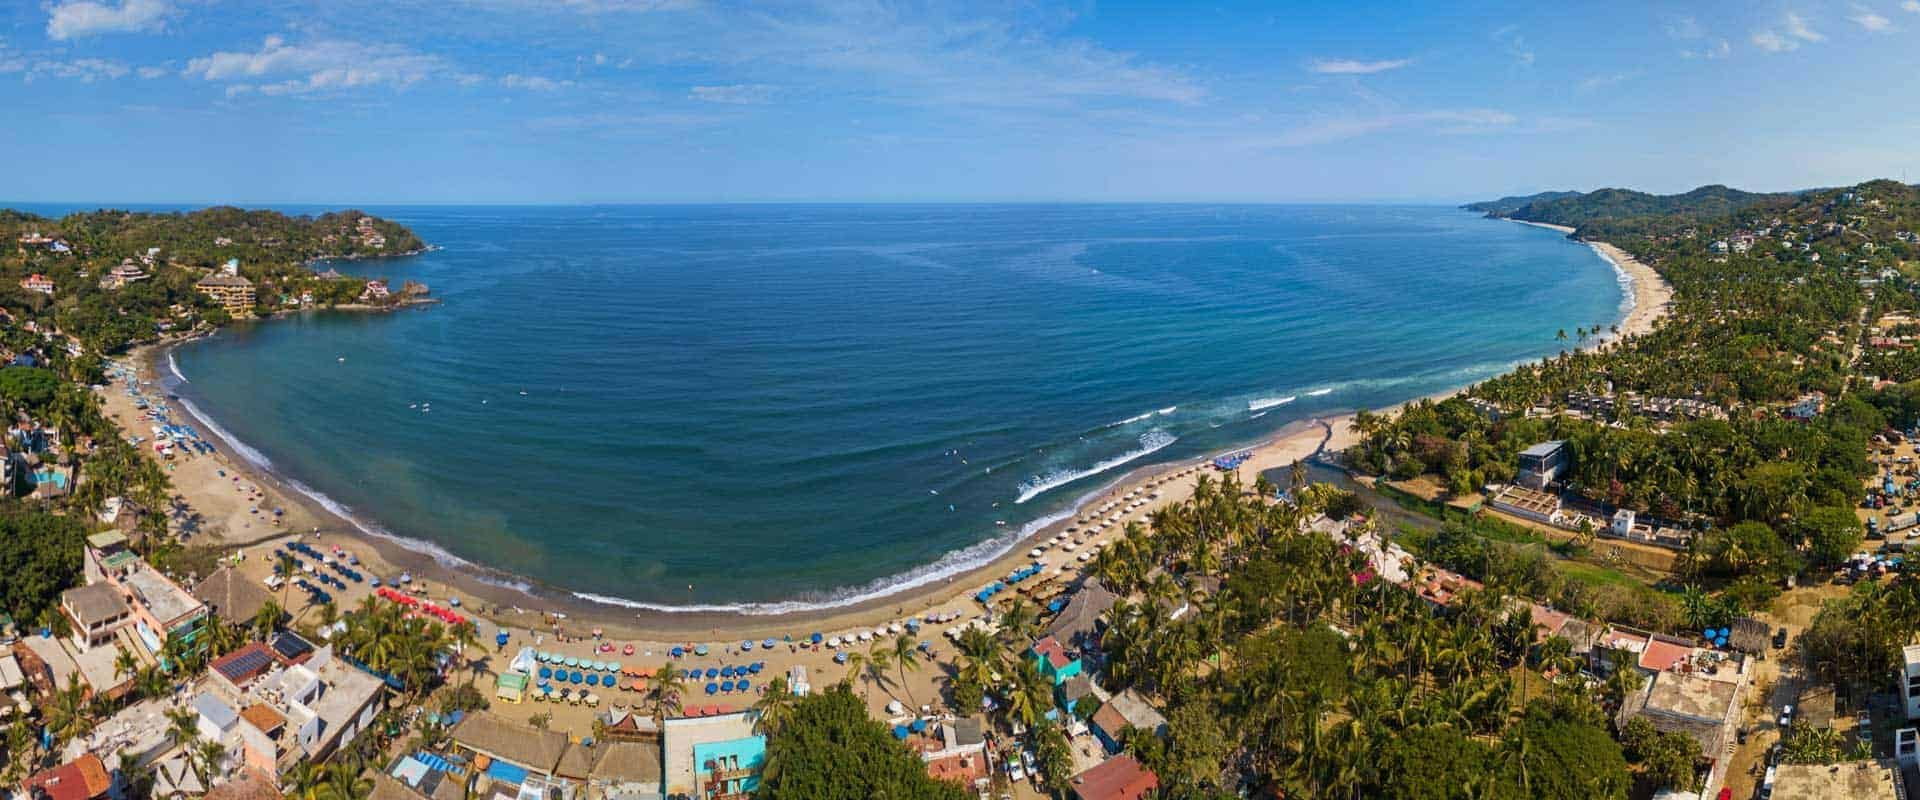 Sayulita Real Estate | MLSVallarta.com